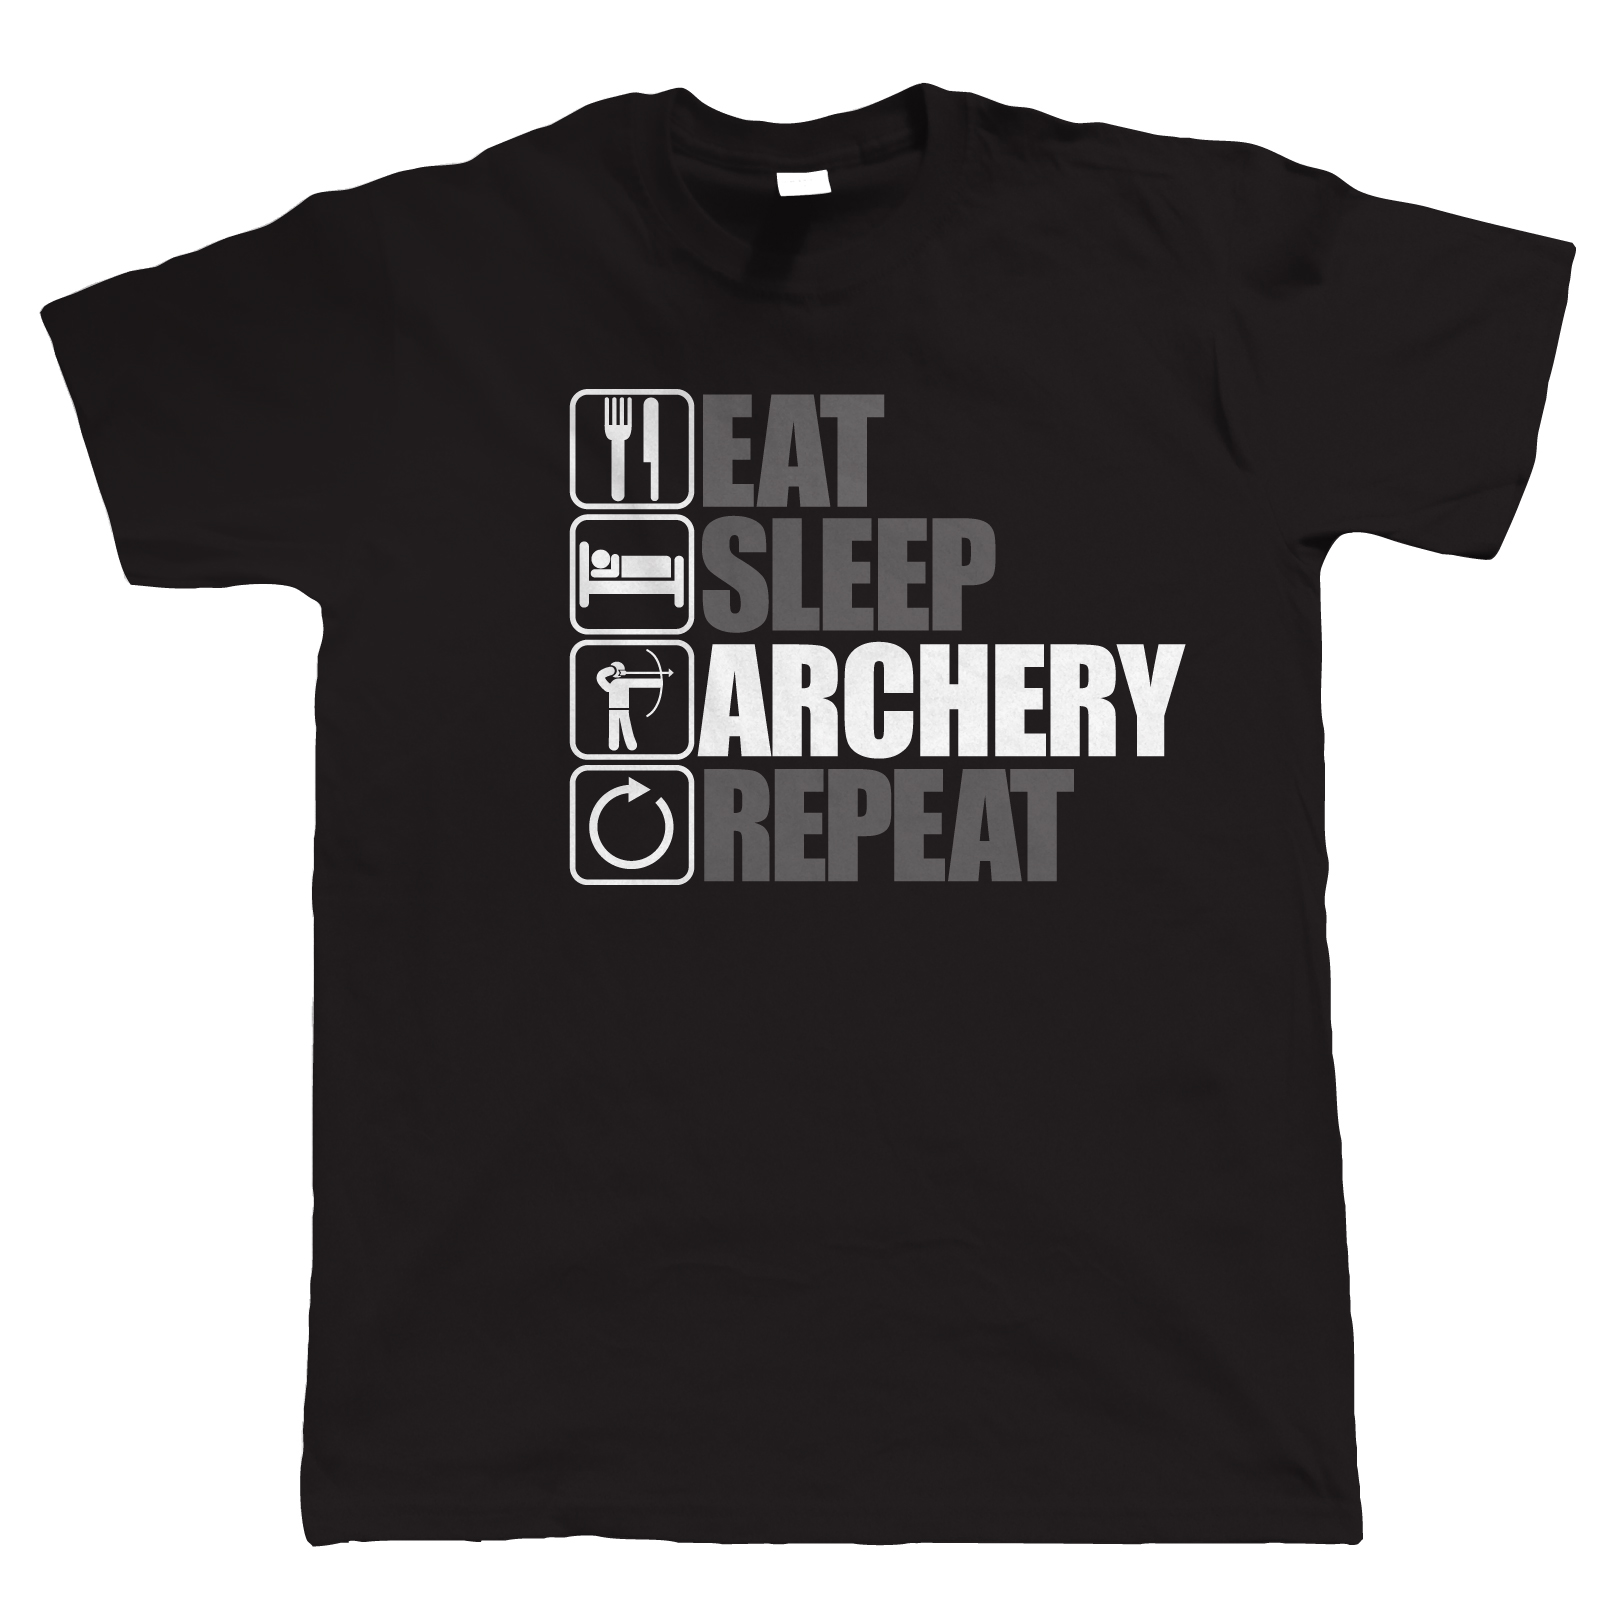 Eat Sleep Archery Repeat, Mens Funny Archery T Shirt, Gift Dad New Arrival MenS Short